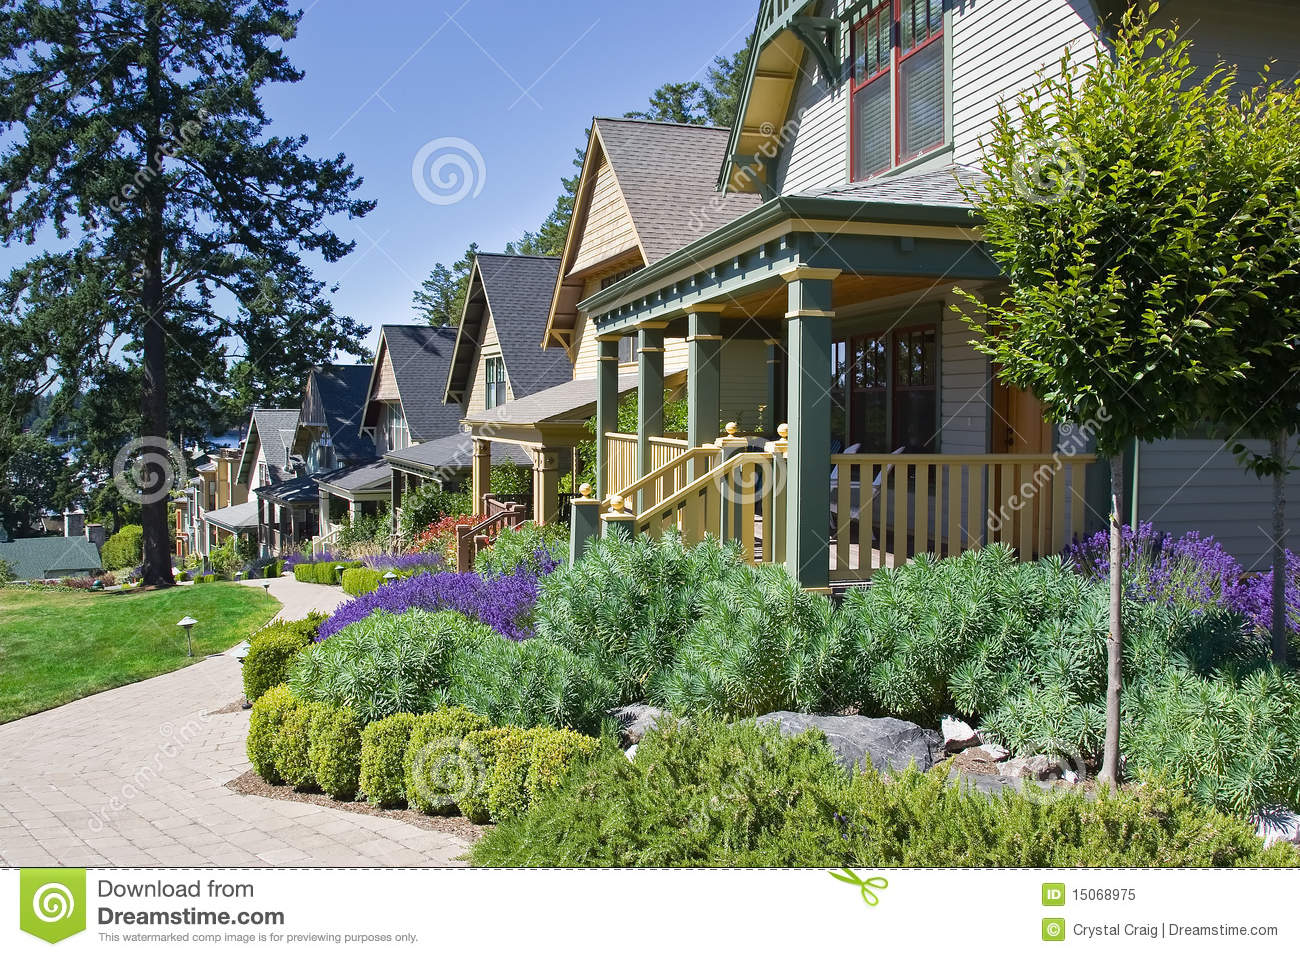 Covered front porch craftsman style home royalty free stock image - Craftsman Style Cottage Homes Royalty Free Stock Photo